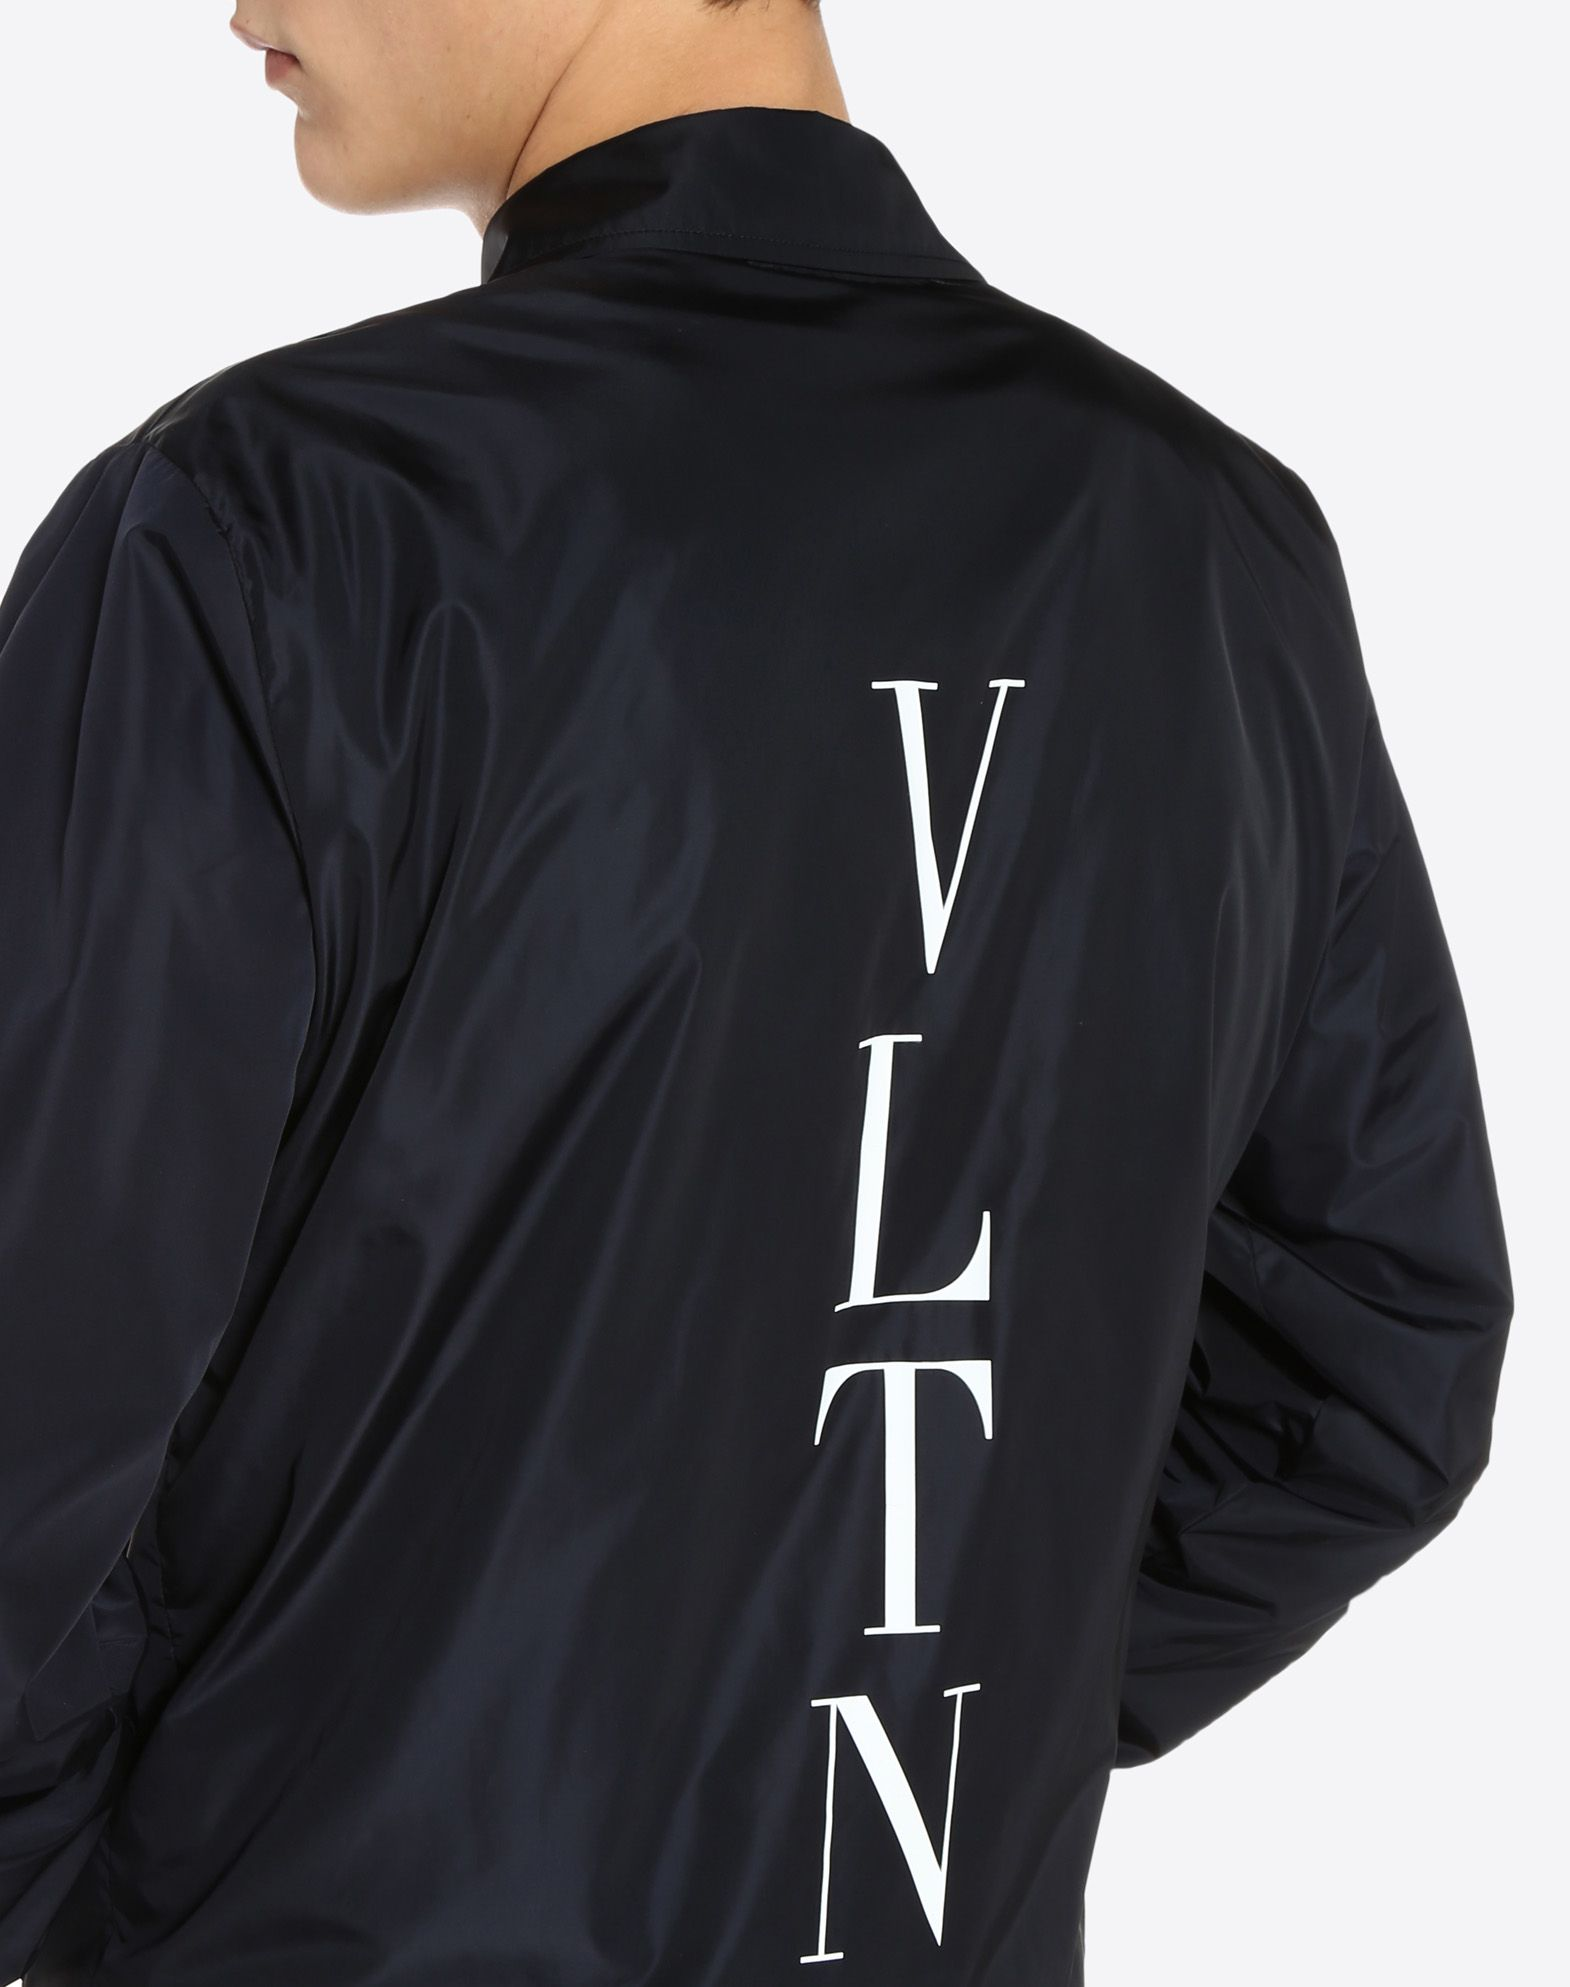 VALENTINO Techno fabric Basic solid colour Fully lined Long sleeves Two pockets One inside pocket Snap button closure  45390828pf